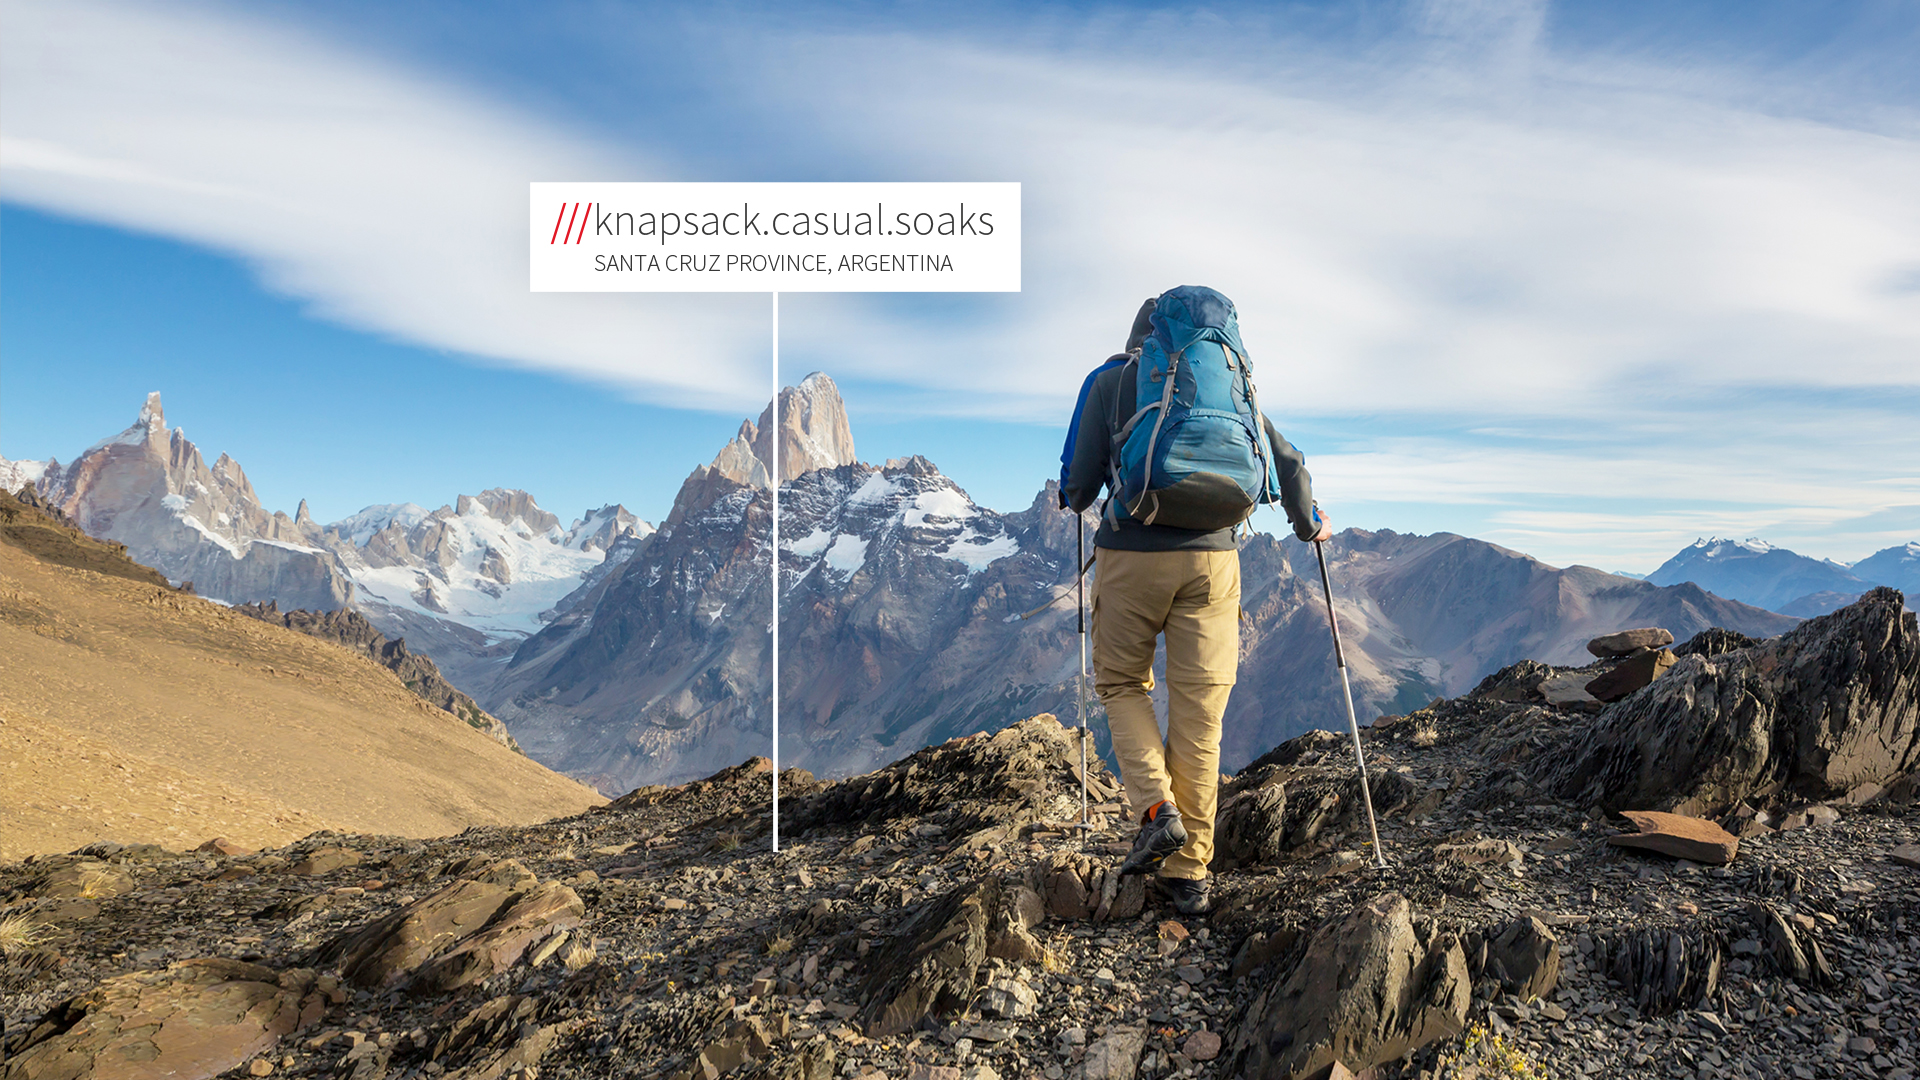 Hiker on mountain at what3words address knapsack.casual.soaks